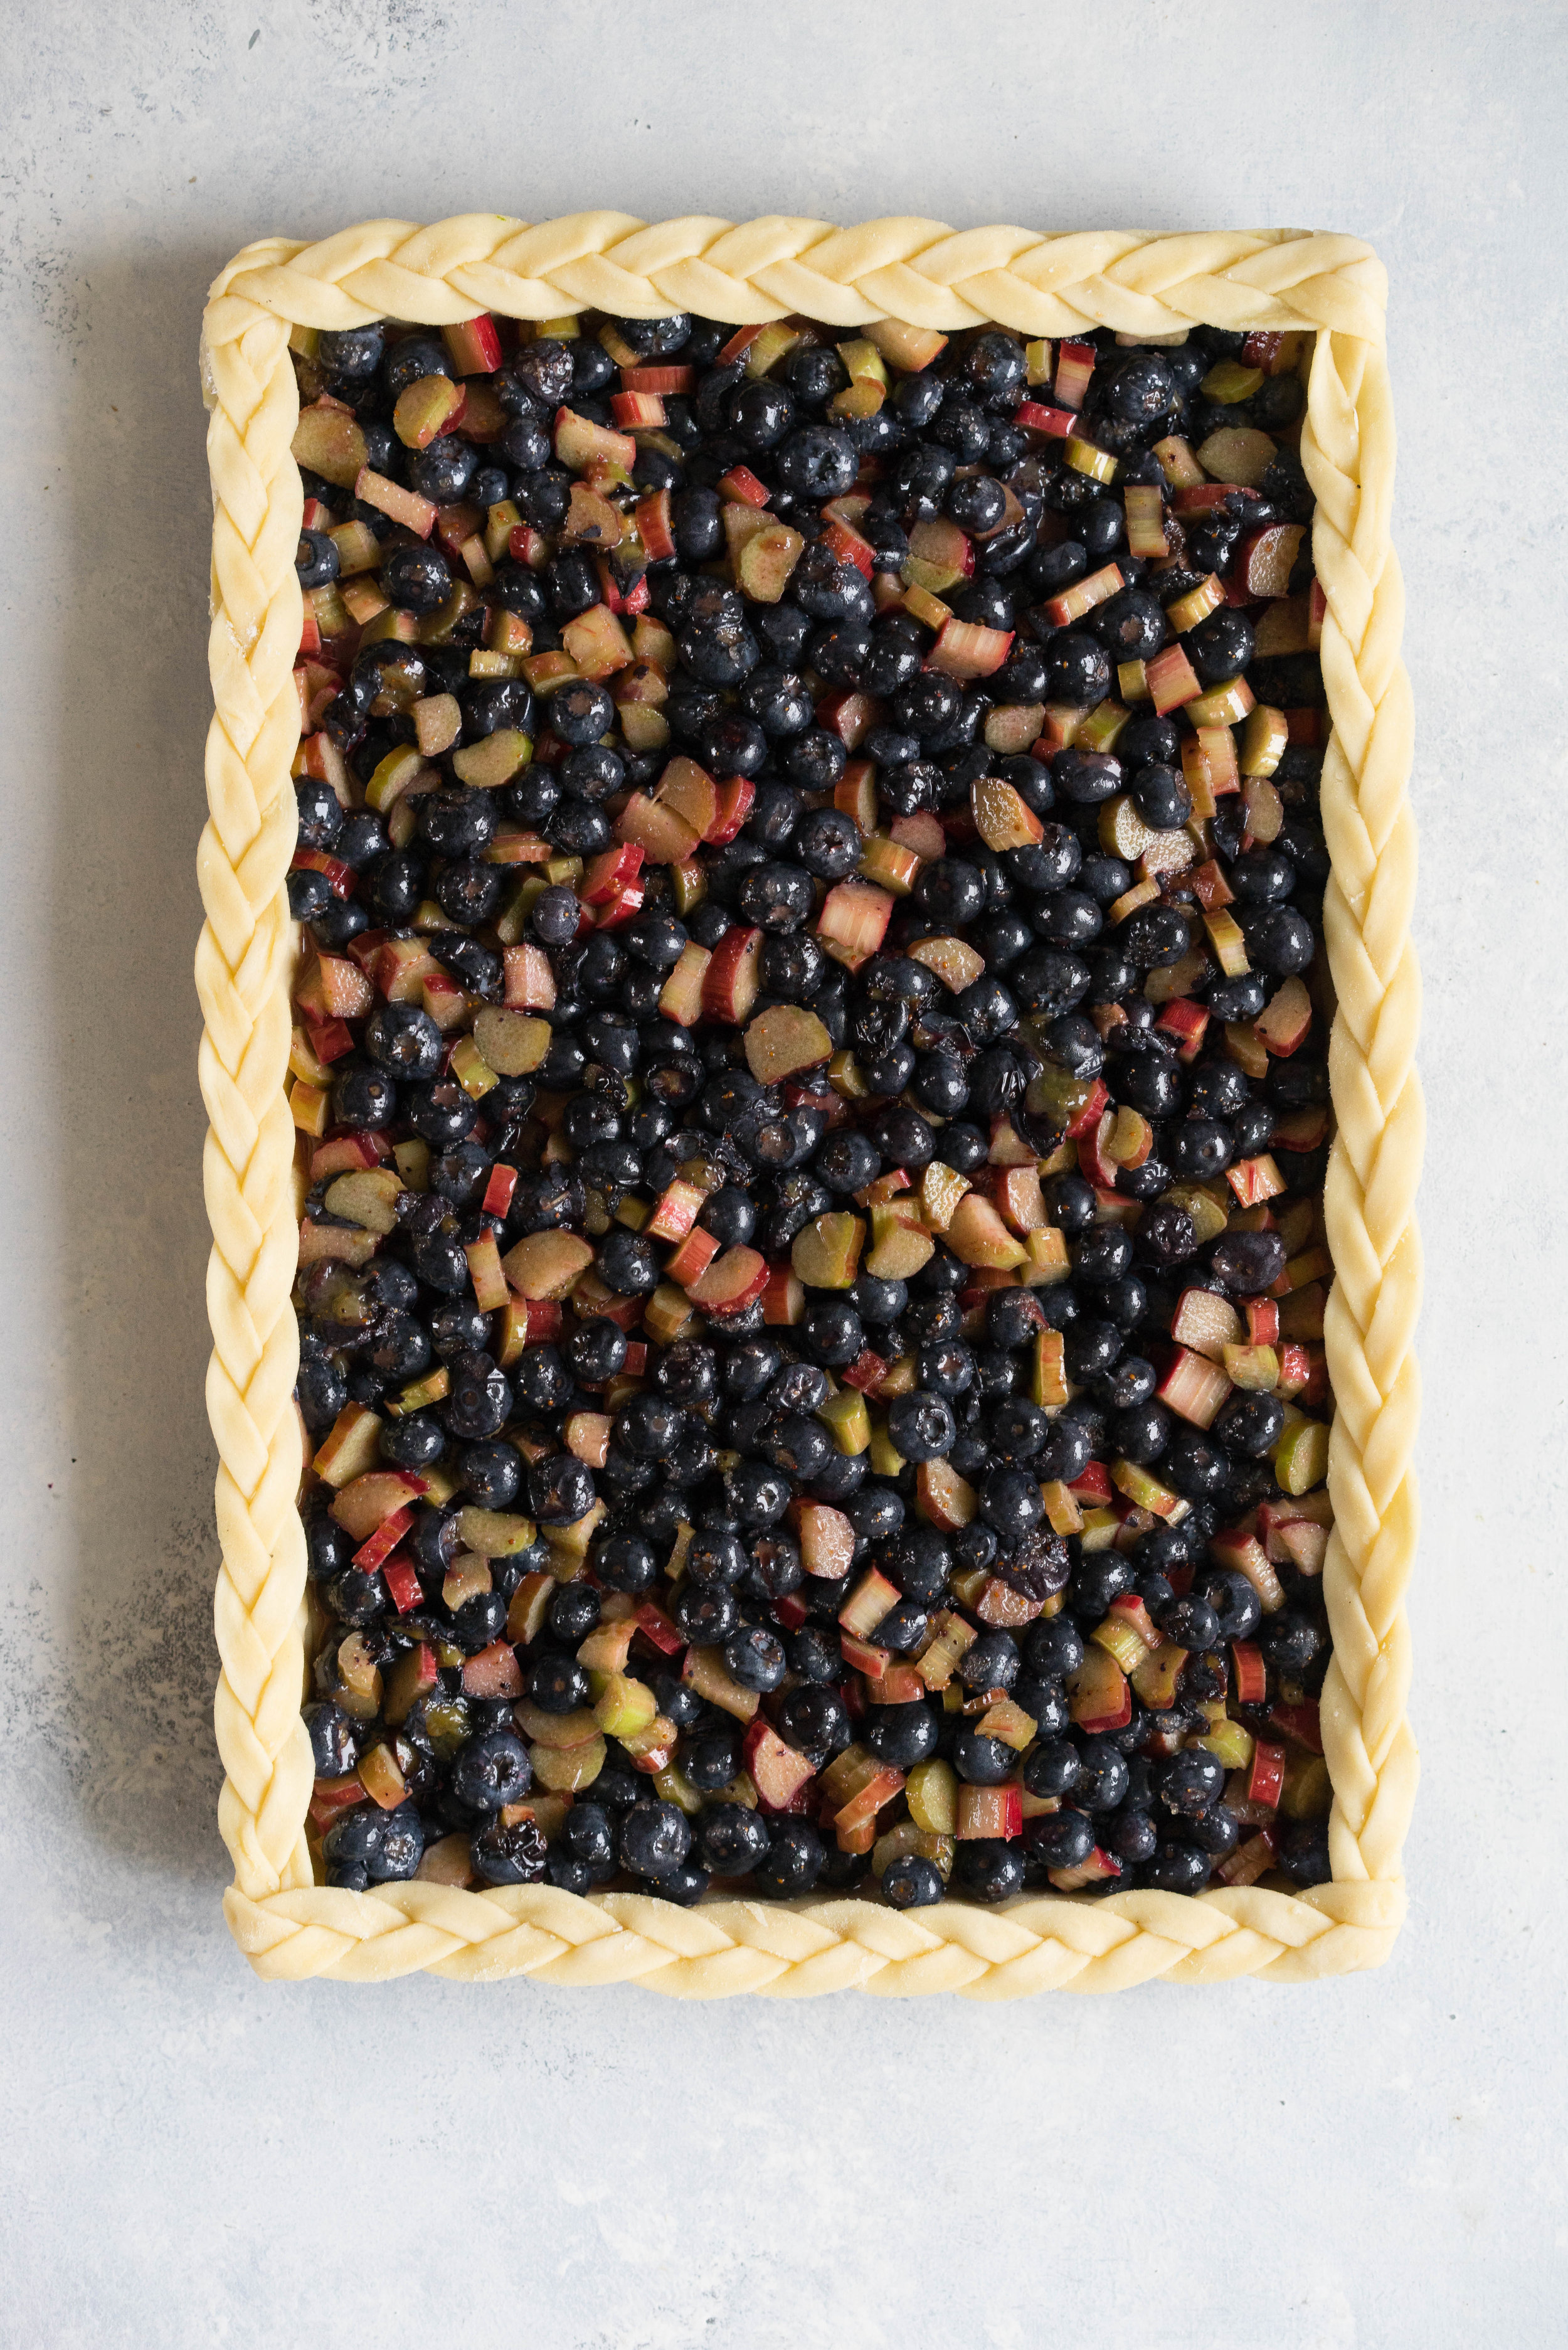 Blueberry and Rhubarb Slab pie - the ideal summer dessert for feeding a crowd! Flaky homemade pie crust is filled with a blueberry rhubarb filling before being topped with fun pie dough decorations then baked to perfection. #blueberry #rhubarb #slabpie #familypie #blueberryrhubarb